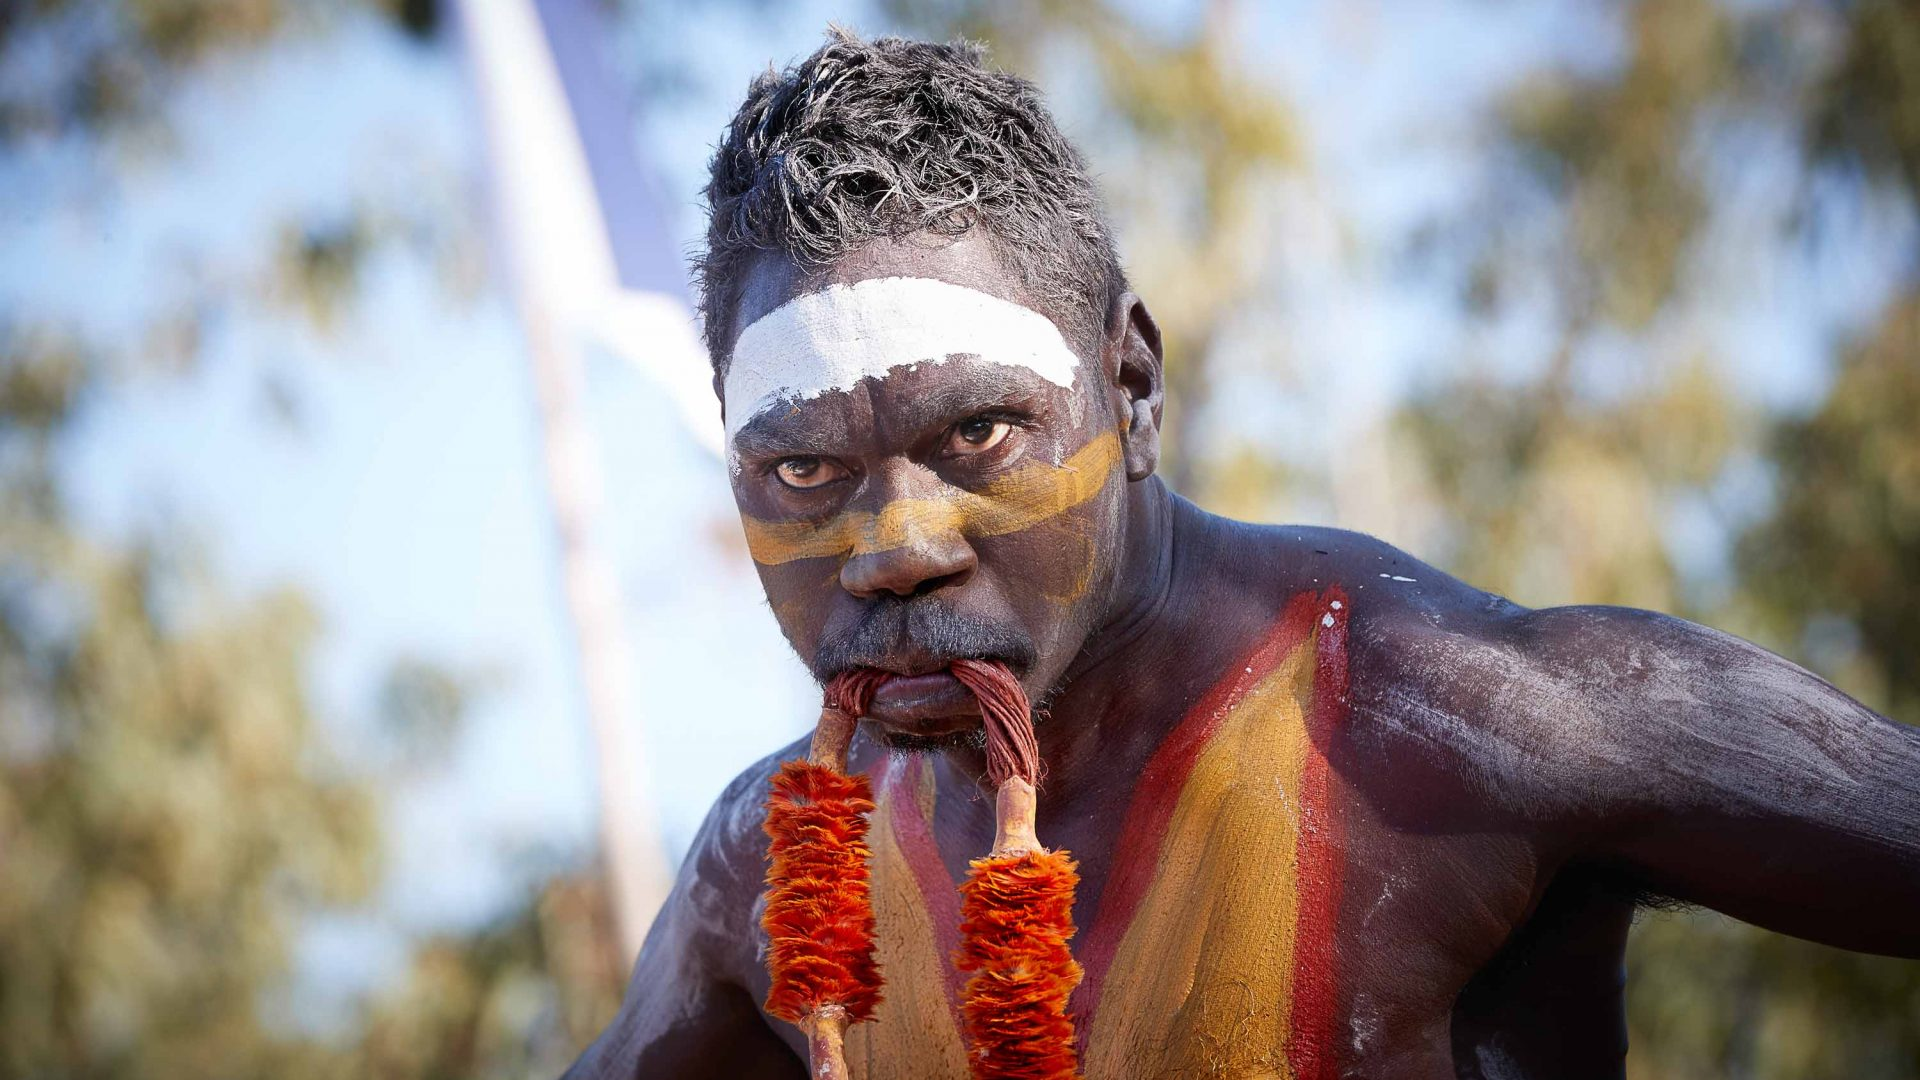 A man with face paint has an orange adornment in his mouth.